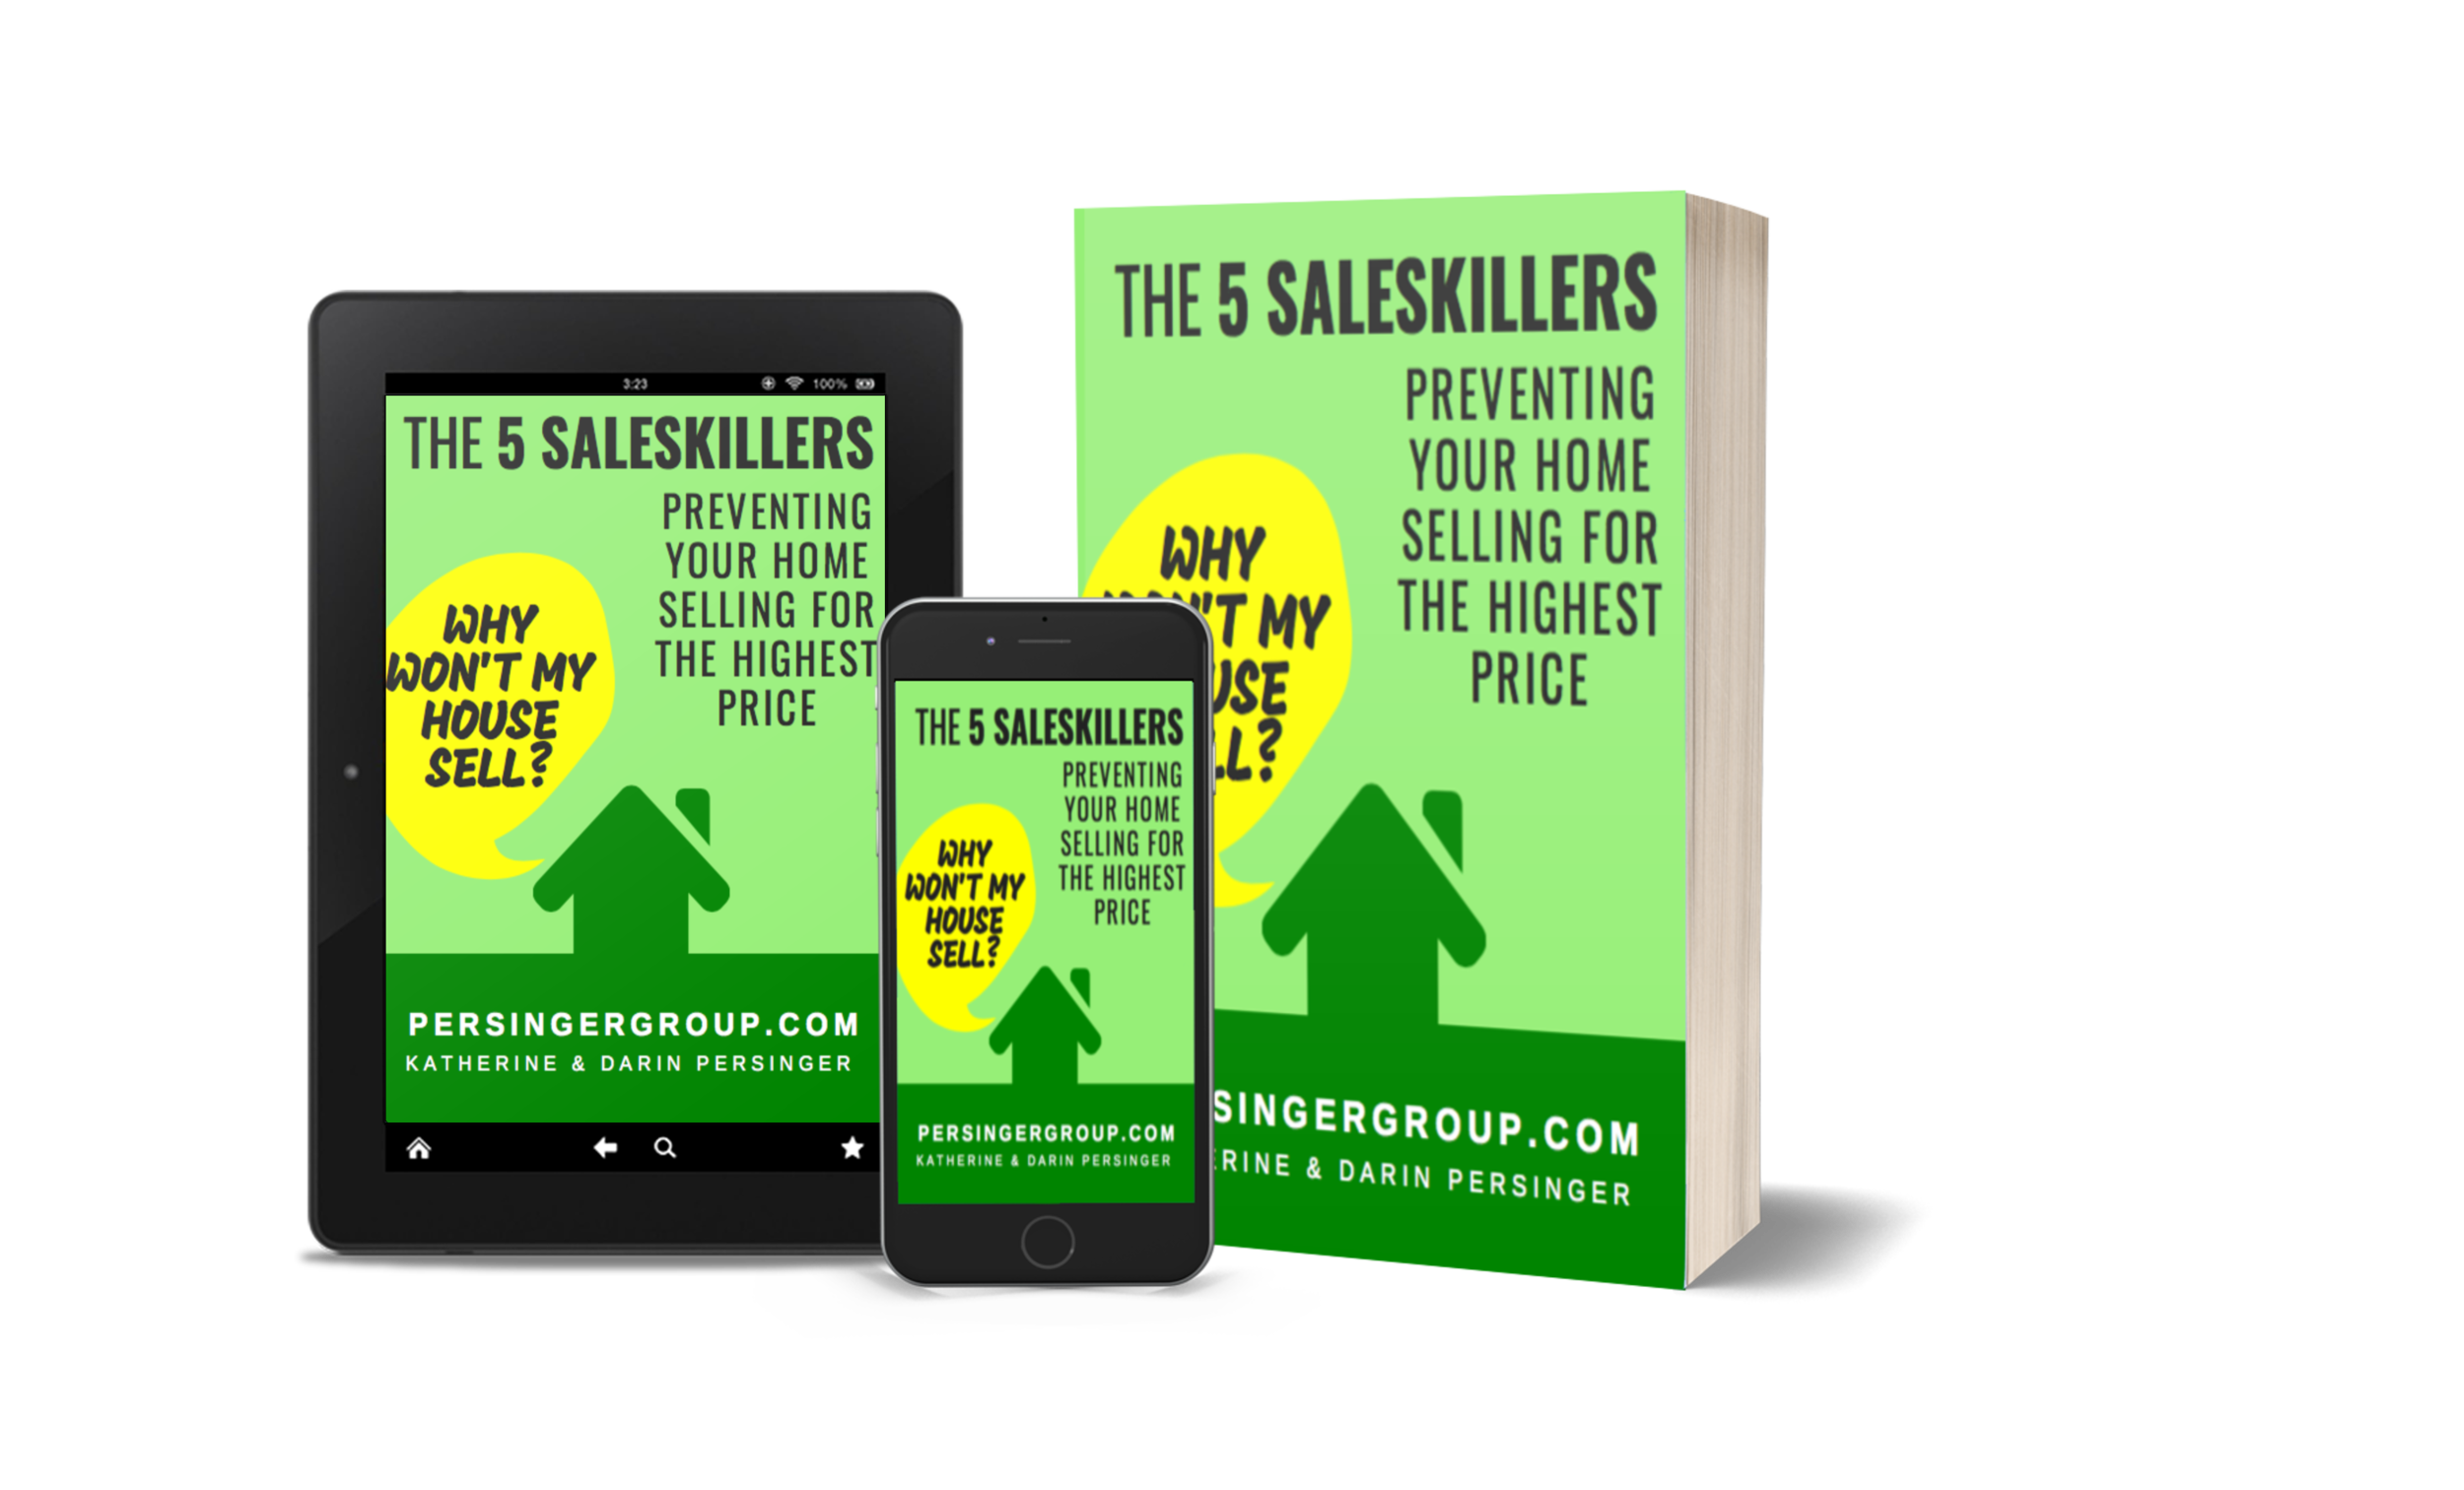 Why Your Home Won't Sell - The 5 SalesKillers Preventing Your Home Sale, Darin Persinger